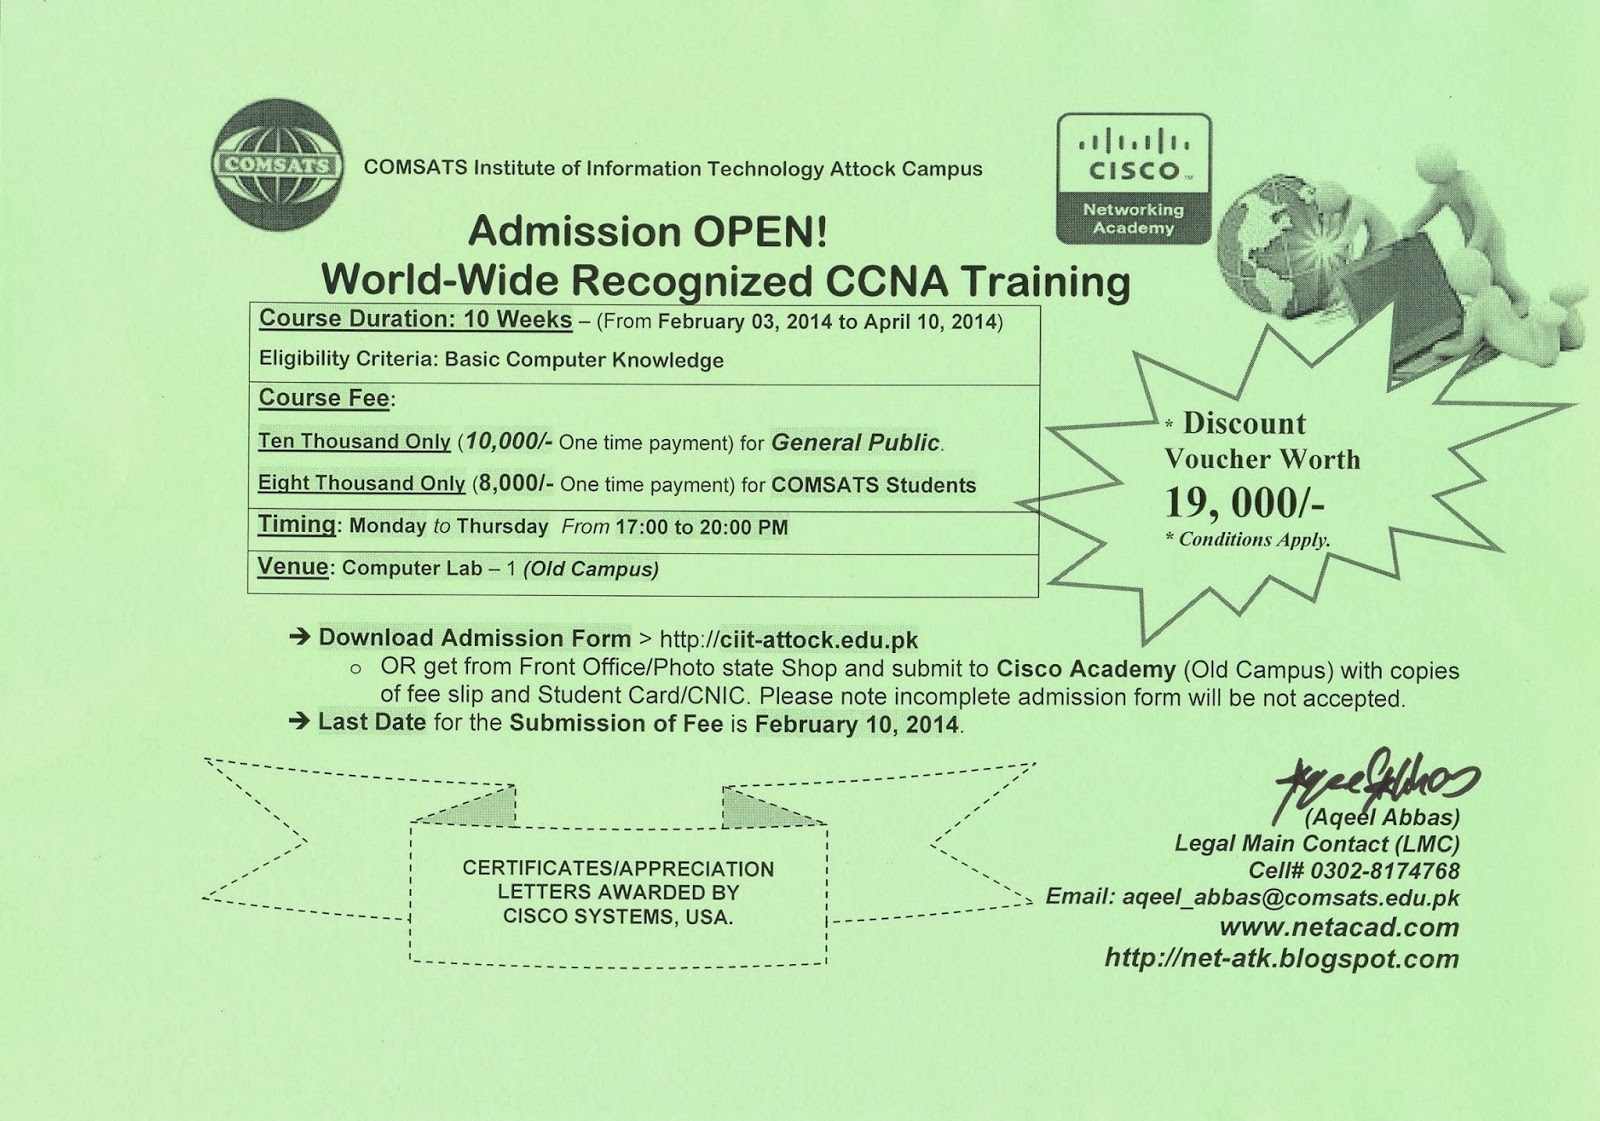 Cisco Networking Academy Ciit Attock Admission Is Open For Ccna